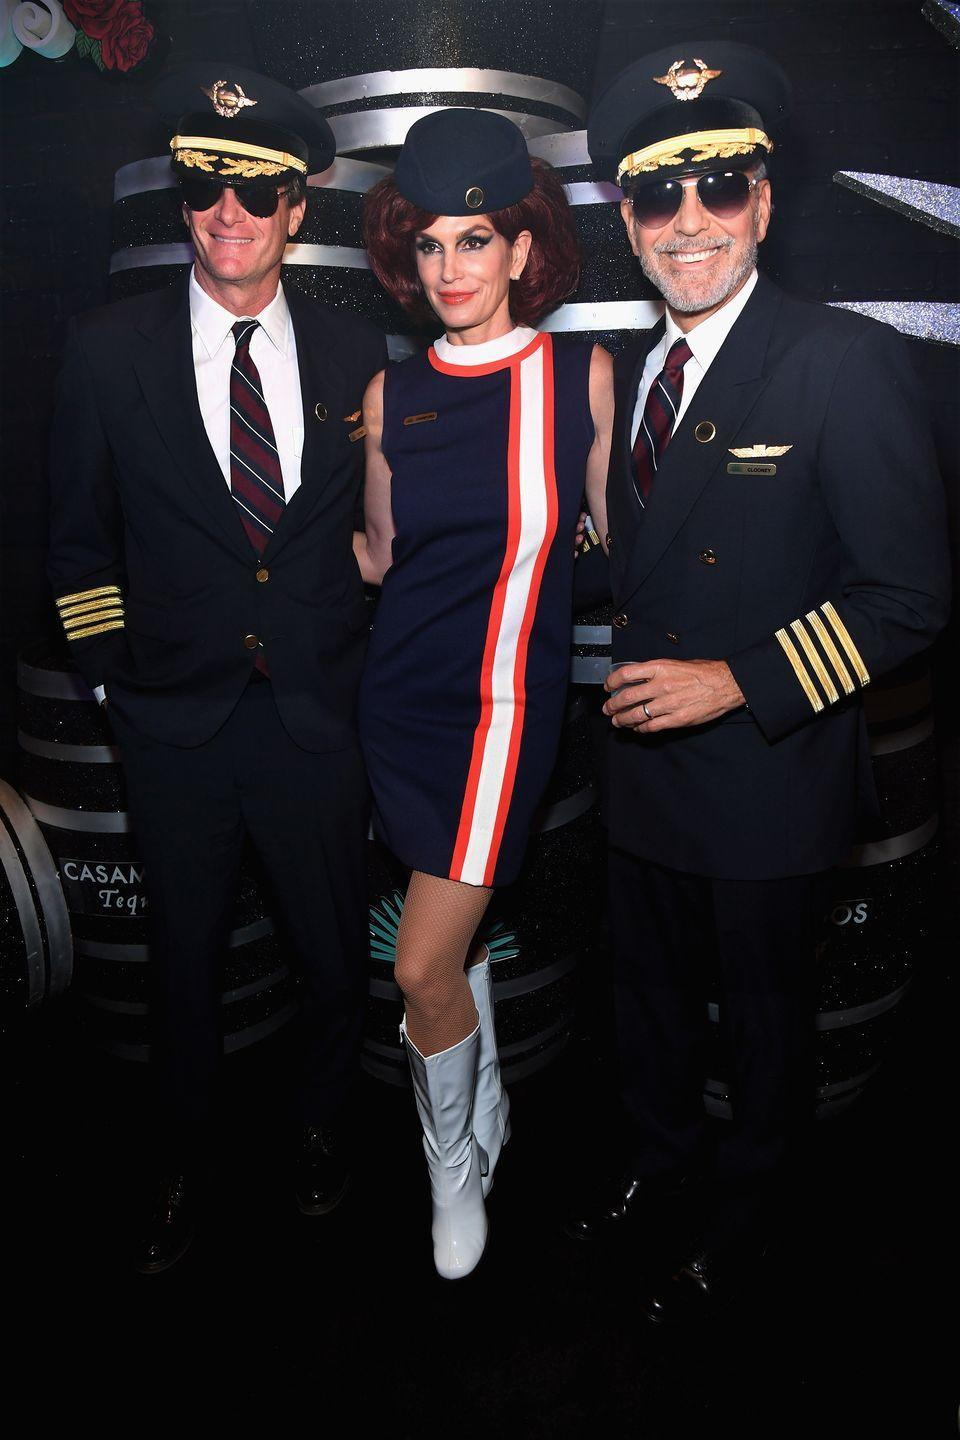 <p>Rande Gerber, Cindy Crawford, and George Clooney as retro pilots and a flight attendant.</p>